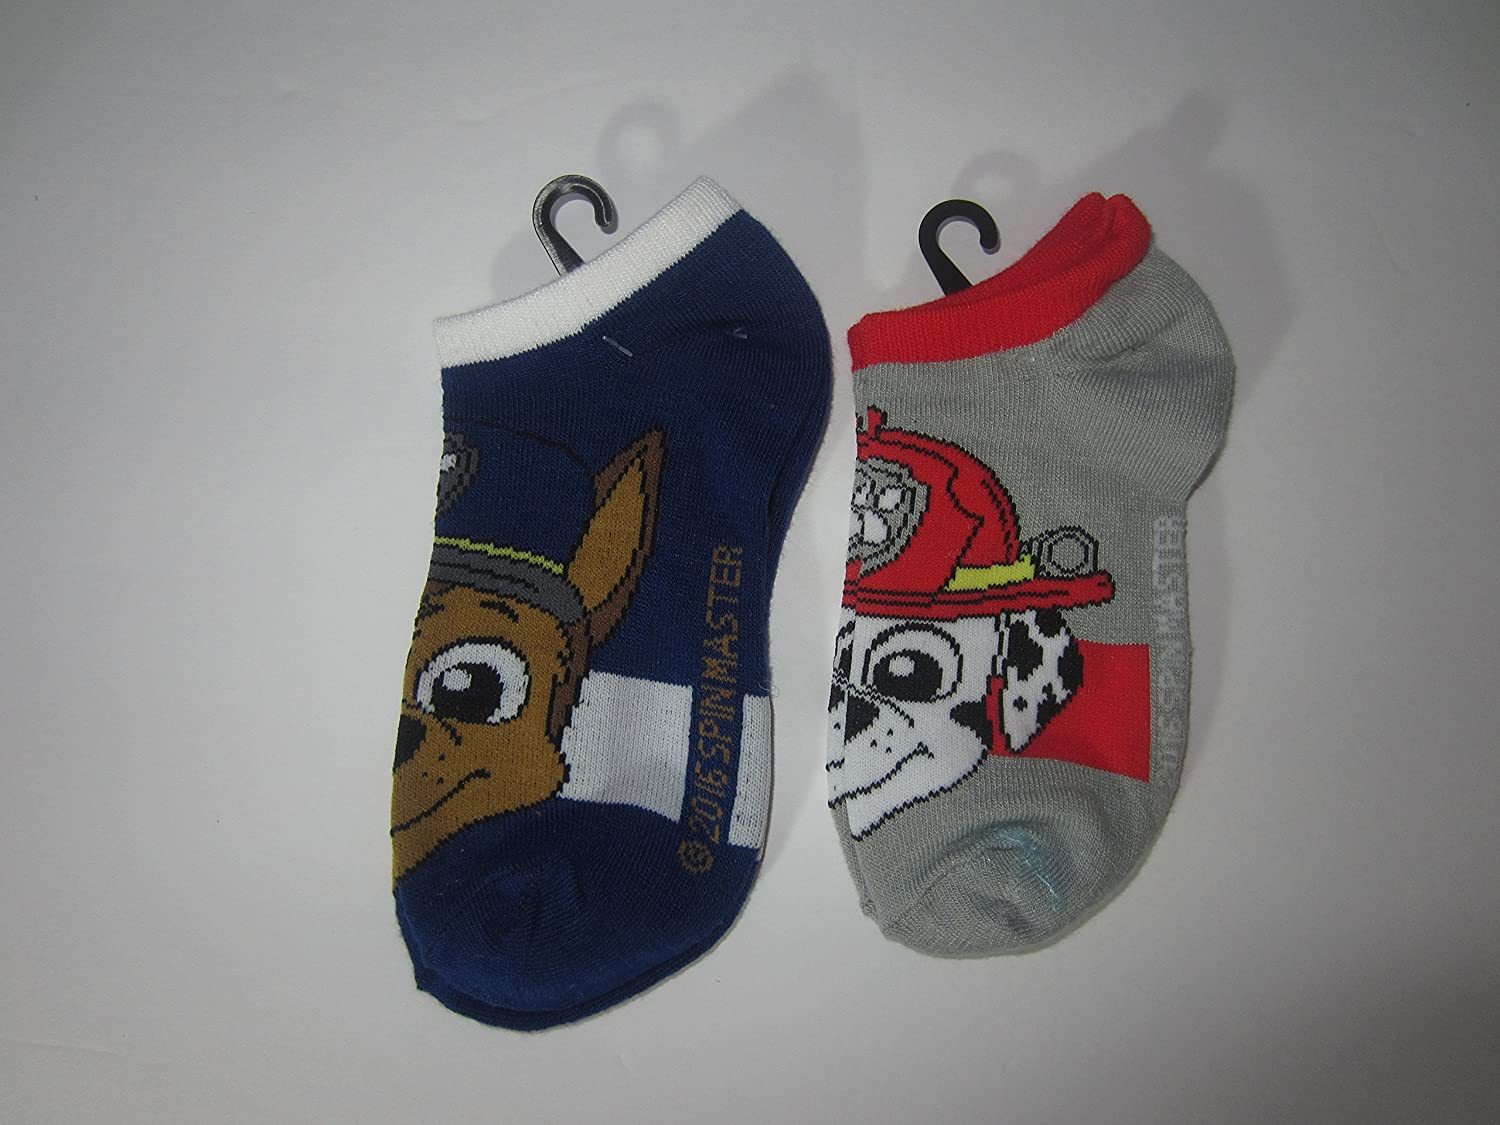 Amazon.com: 5 Pair Assorted designs and color schemes Boys Size 6-8: Clothing